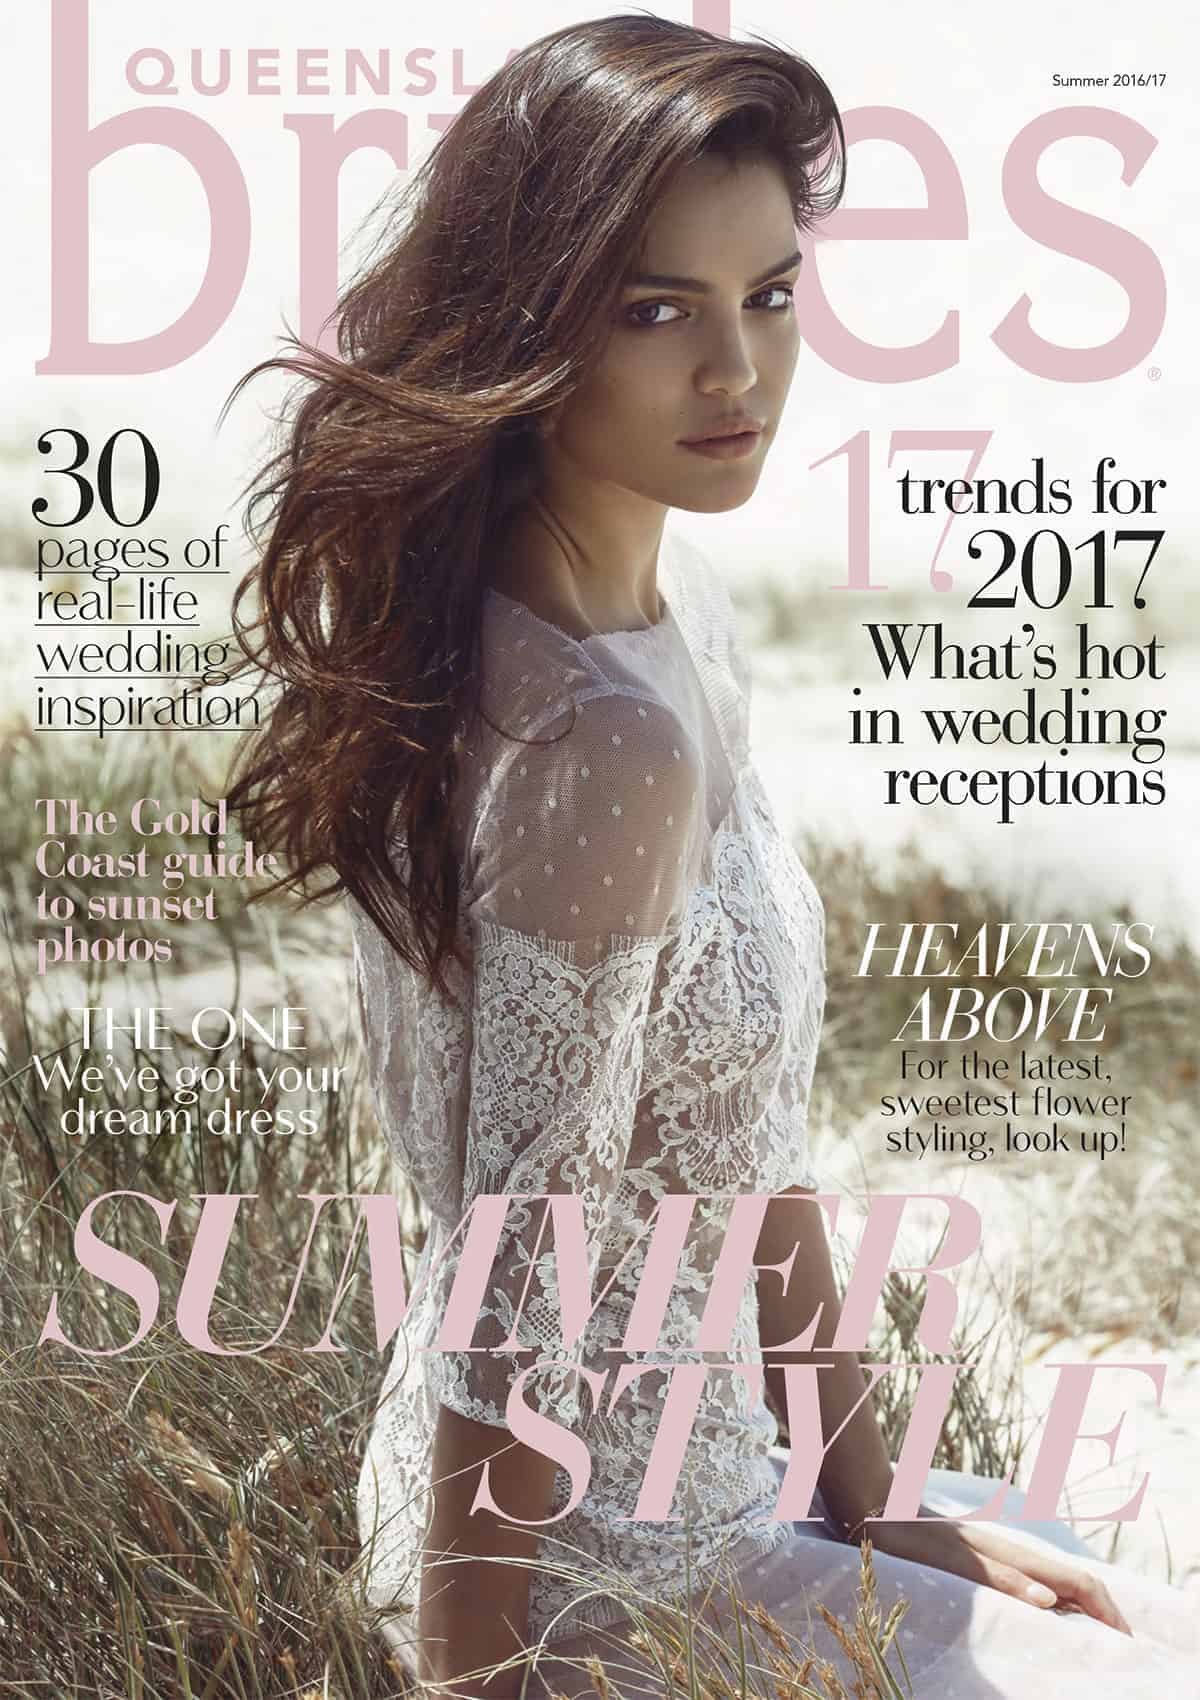 Queensland Brides Summer 16-17 front cover